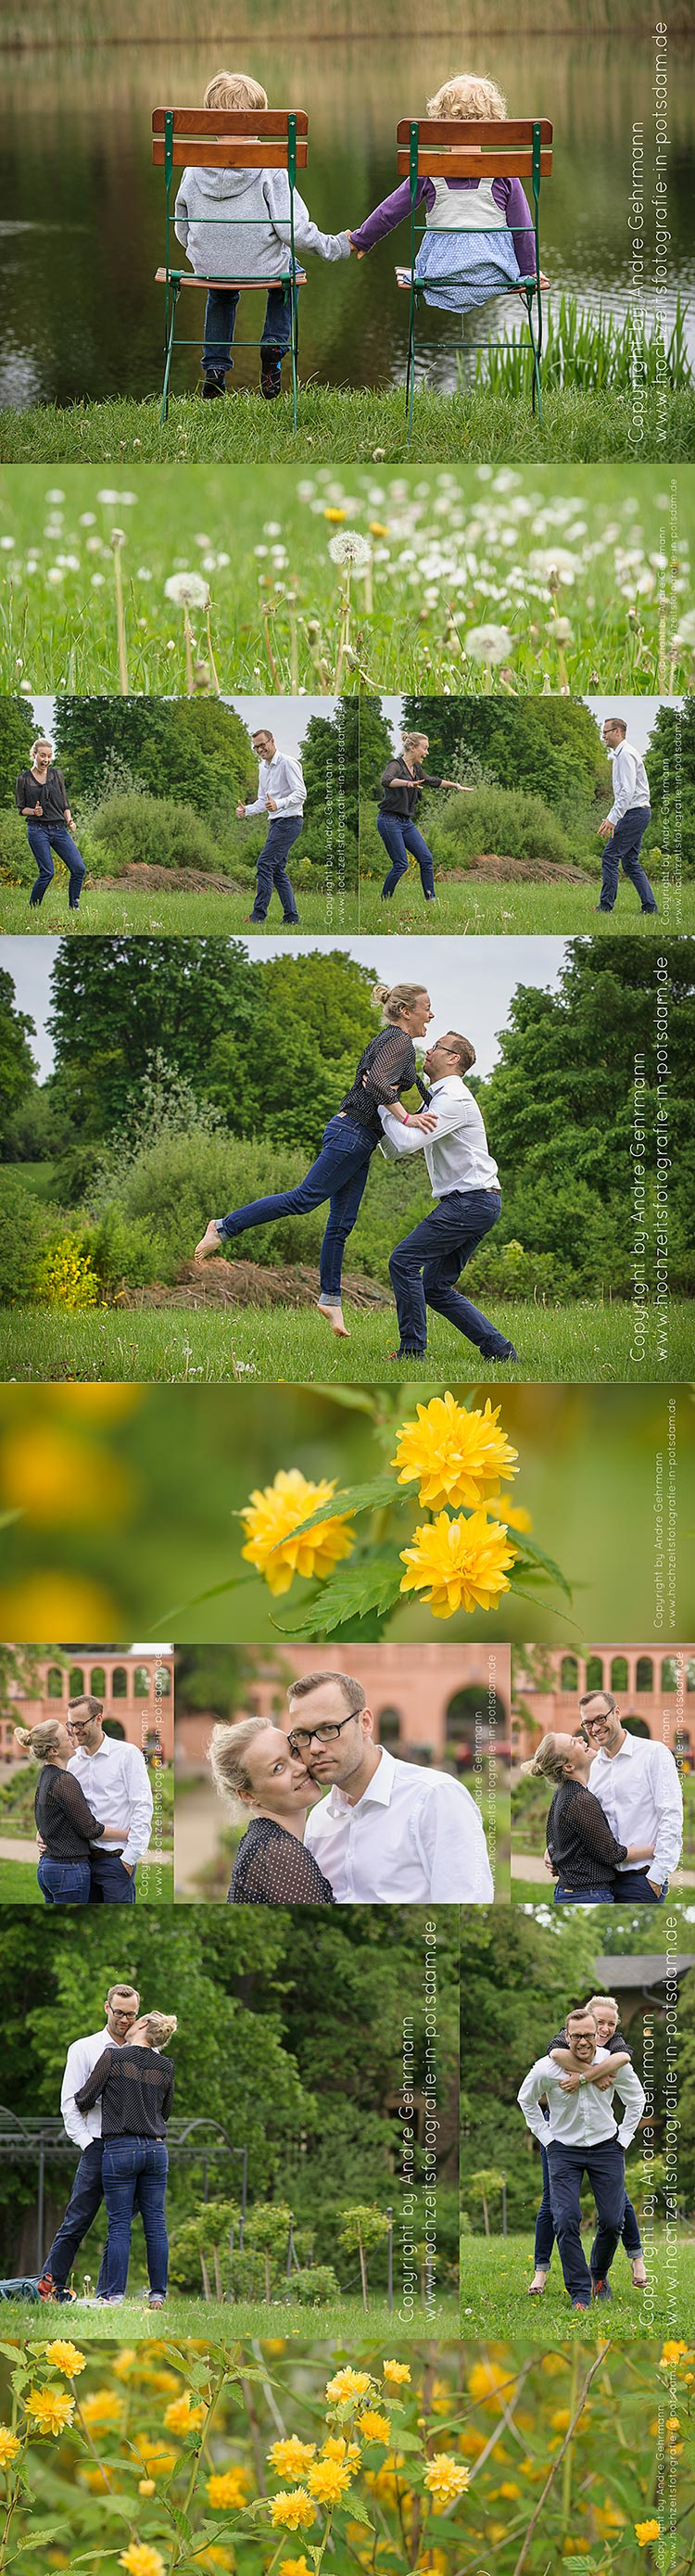 Collage-Engagementshooting-Katja-und-Rene_750px